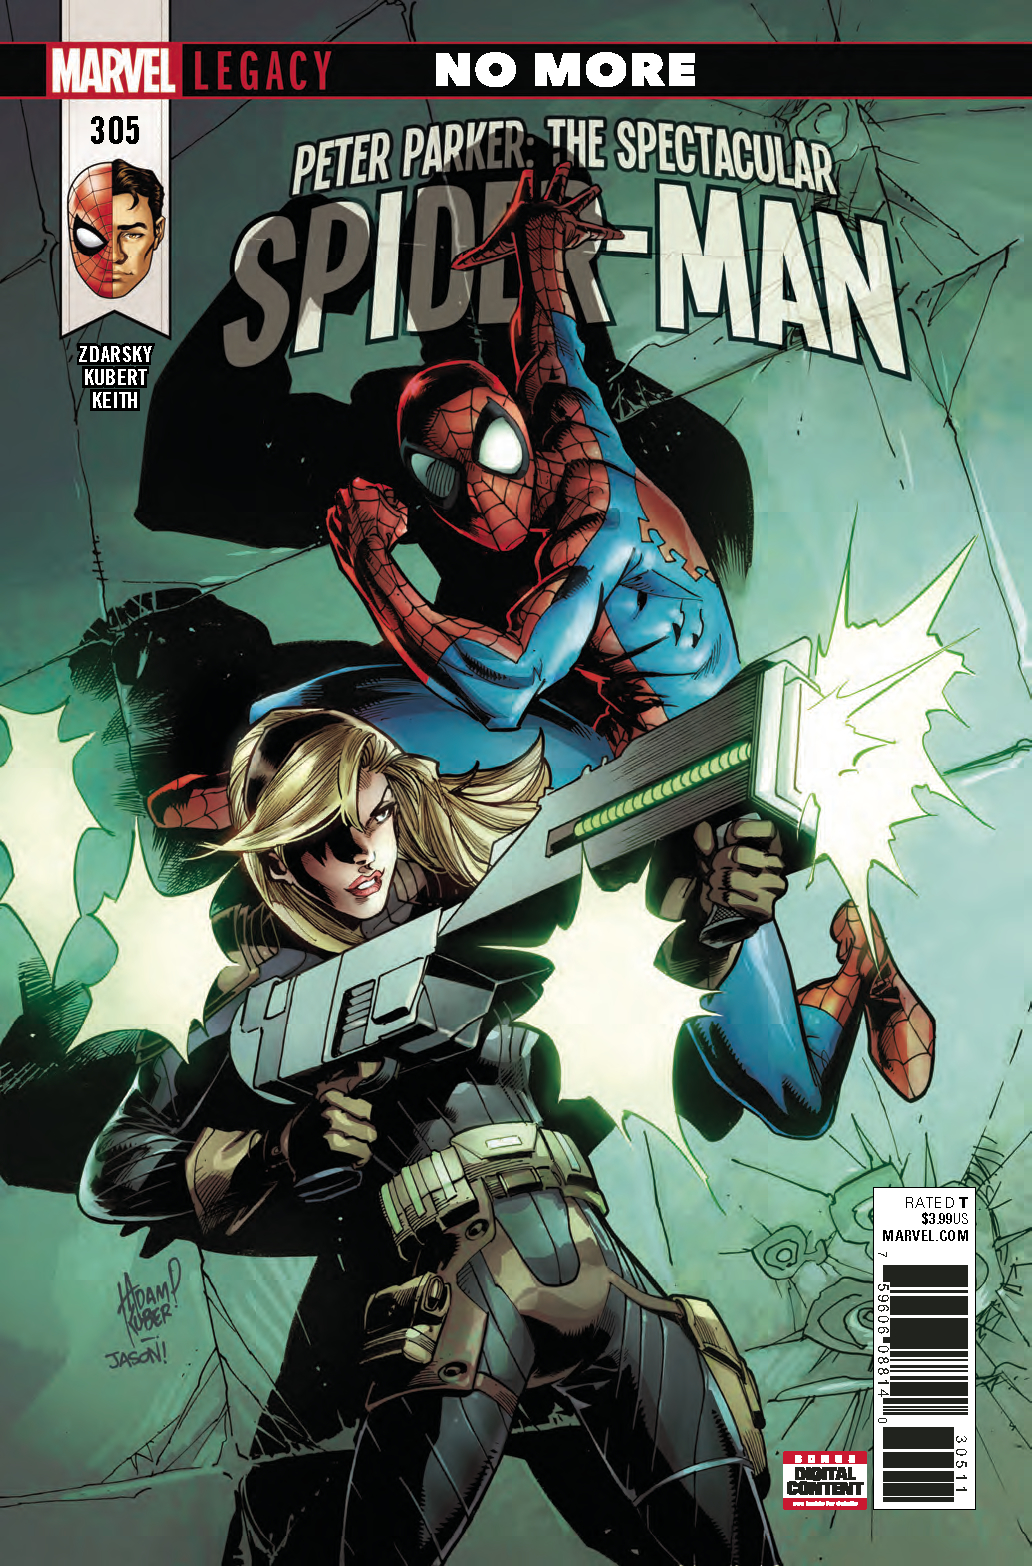 PETER PARKER SPECTACULAR SPIDER-MAN #305